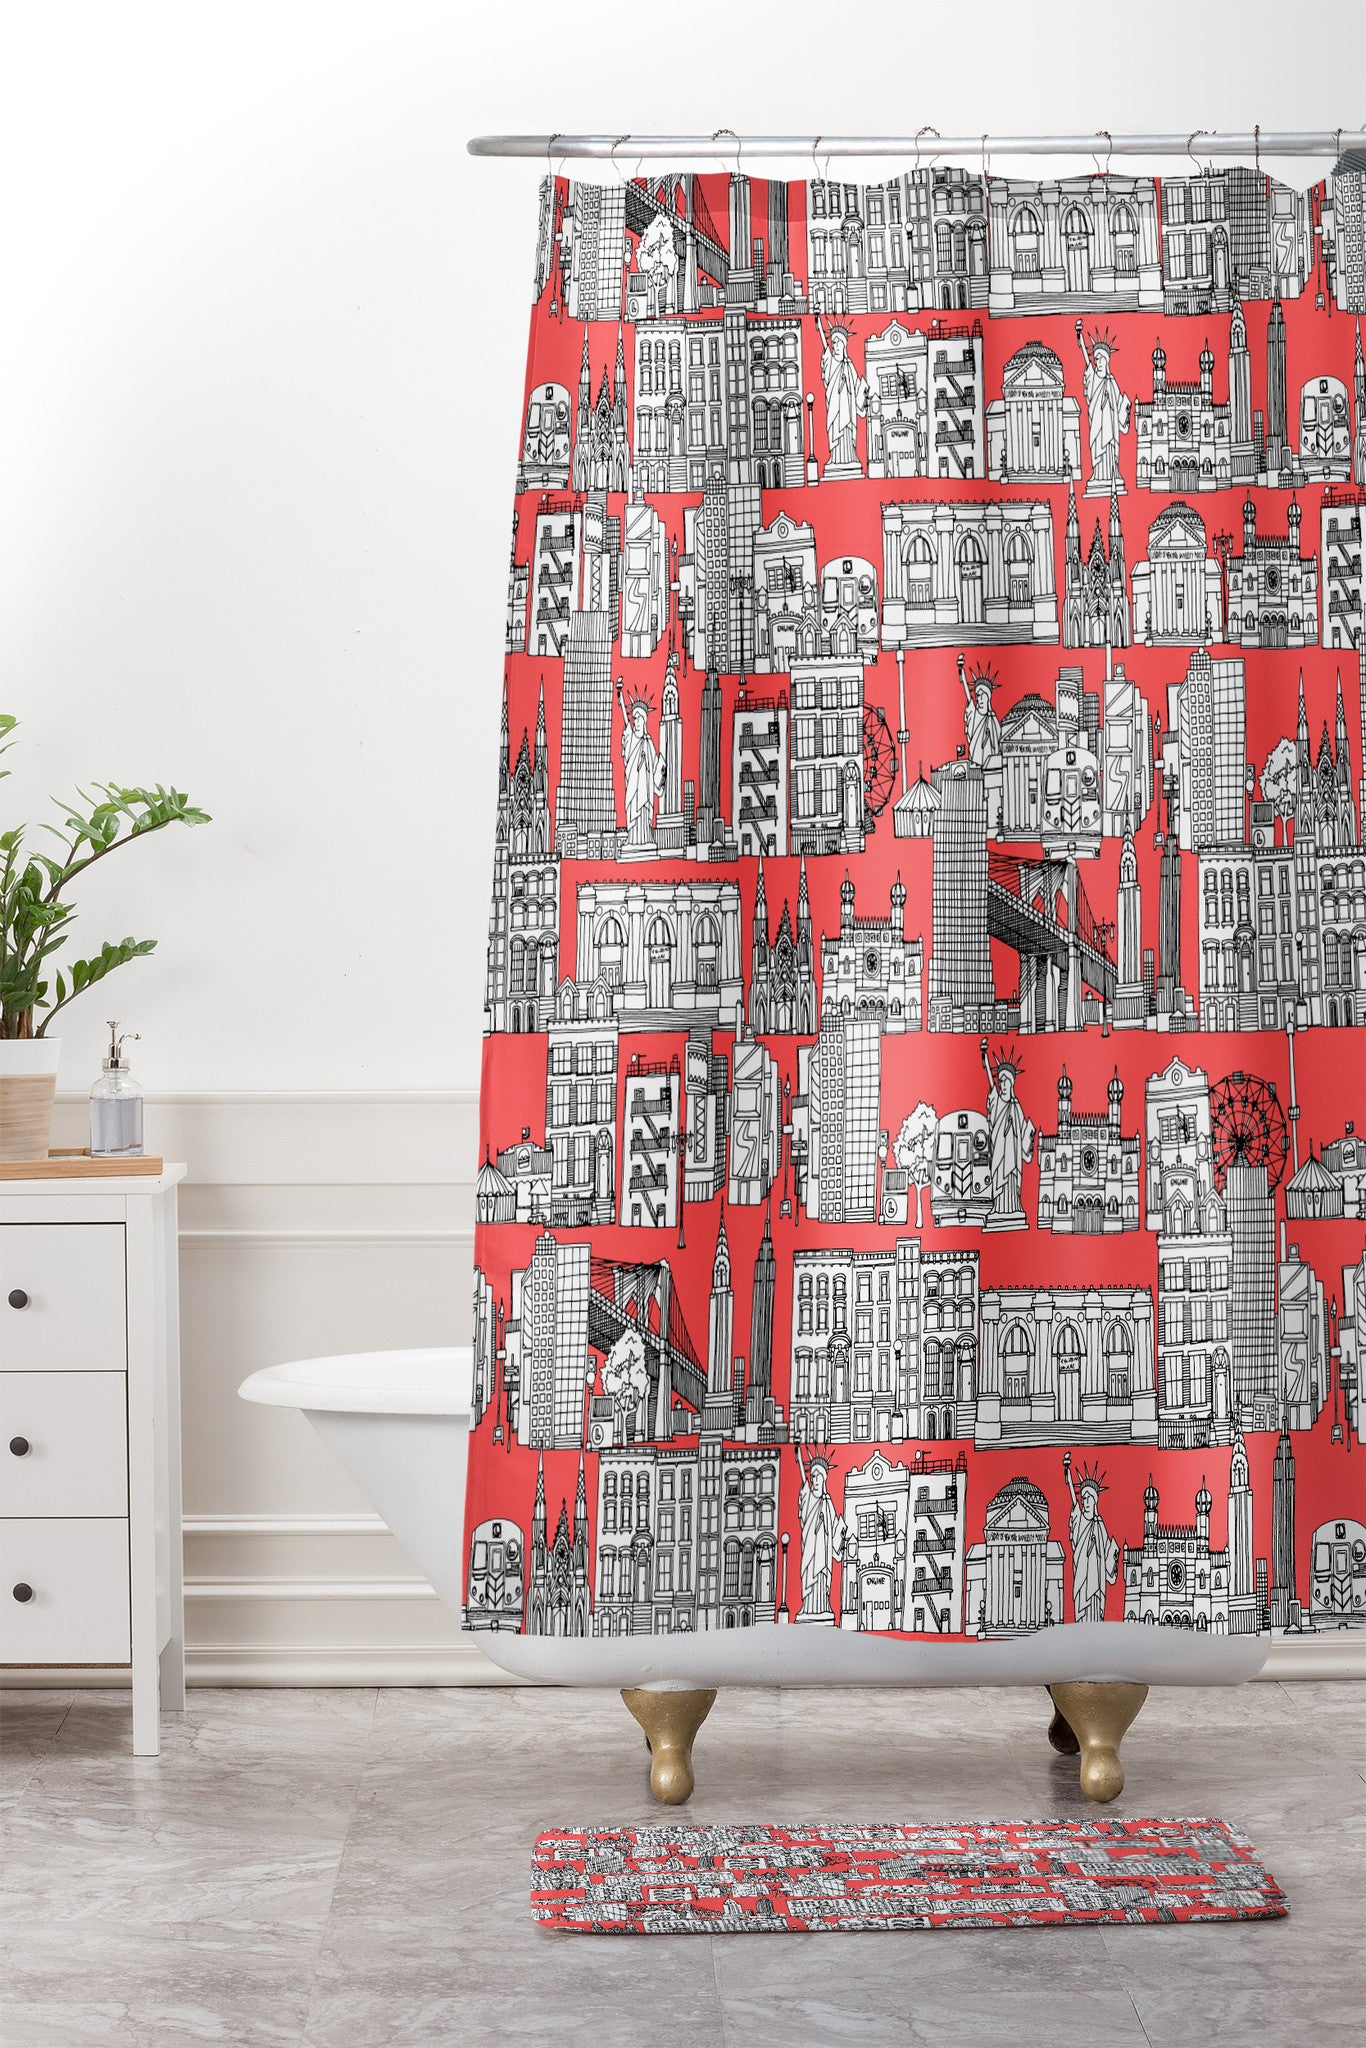 New York Coral Shower Curtain And Mat By Sharon Turner